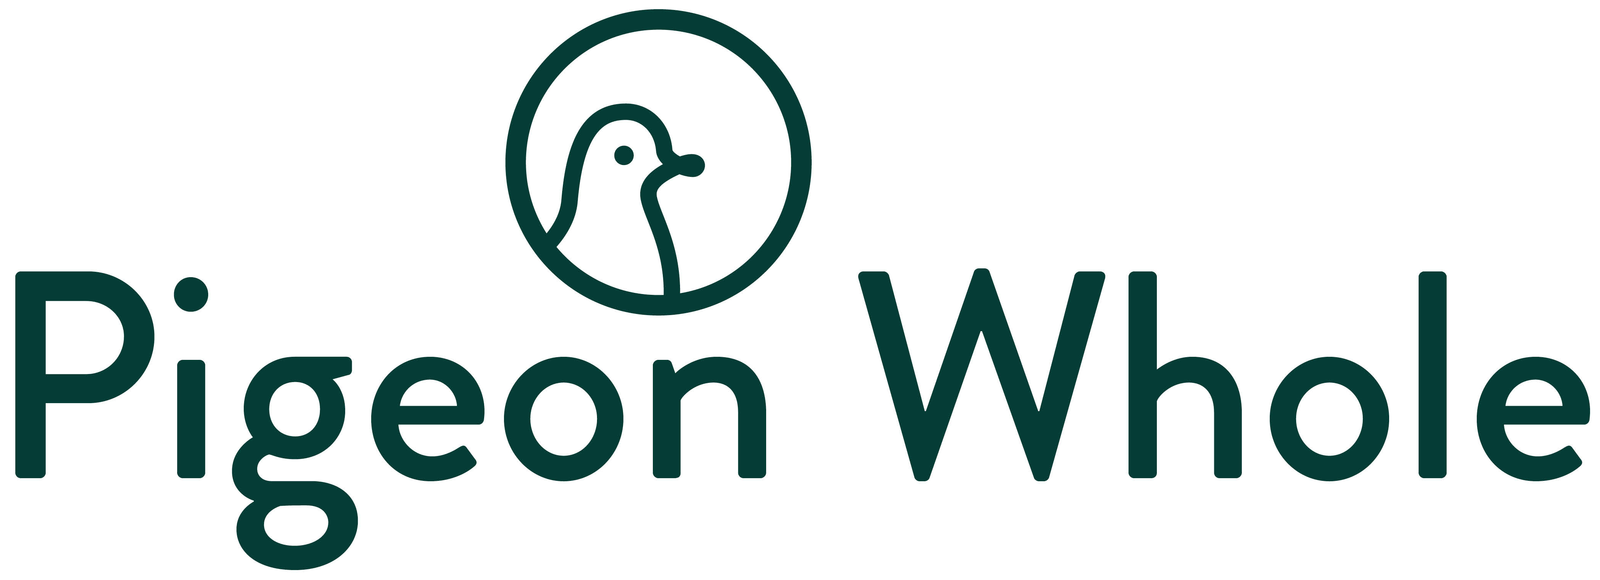 Pigeon Whole